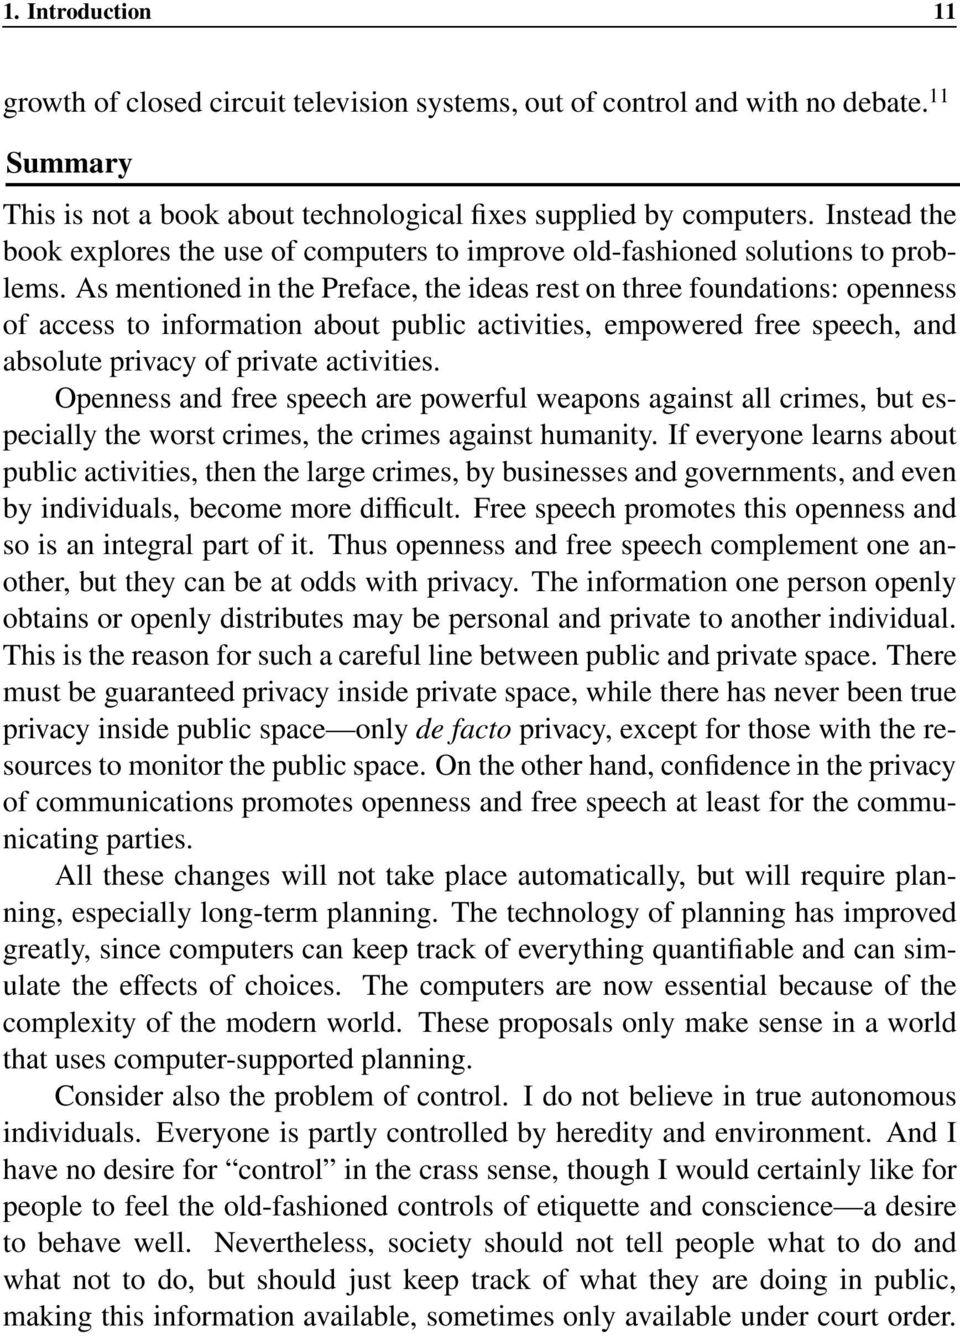 As mentioned in the Preface, the ideas rest on three foundations: openness of access to information about public activities, empowered free speech, and absolute privacy of private activities.